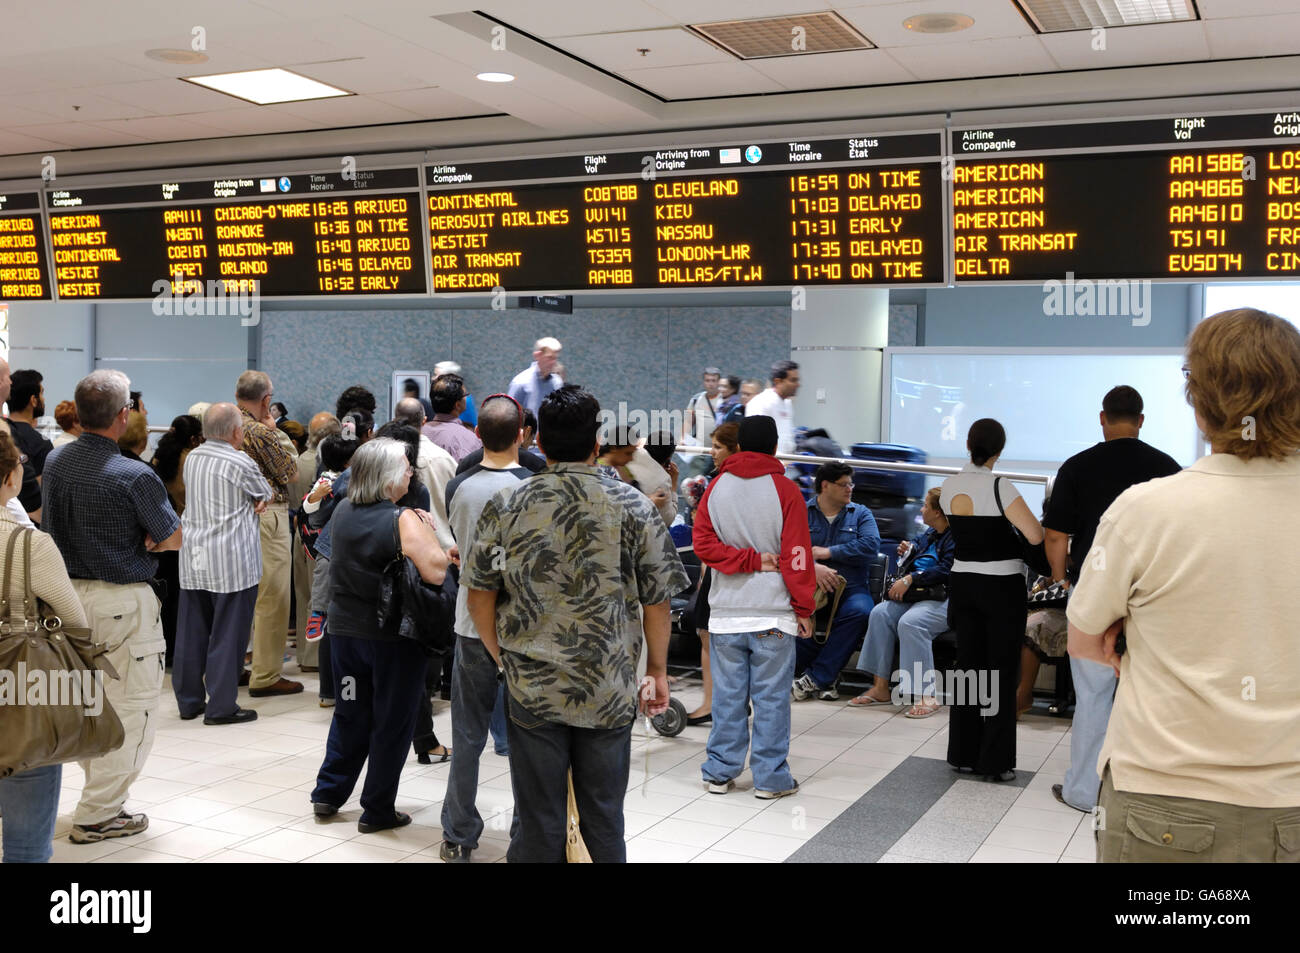 People waiting at arrivals hall of Toronto Pearson International Airport, Toronto, Ontario, Canada, North America - Stock Image